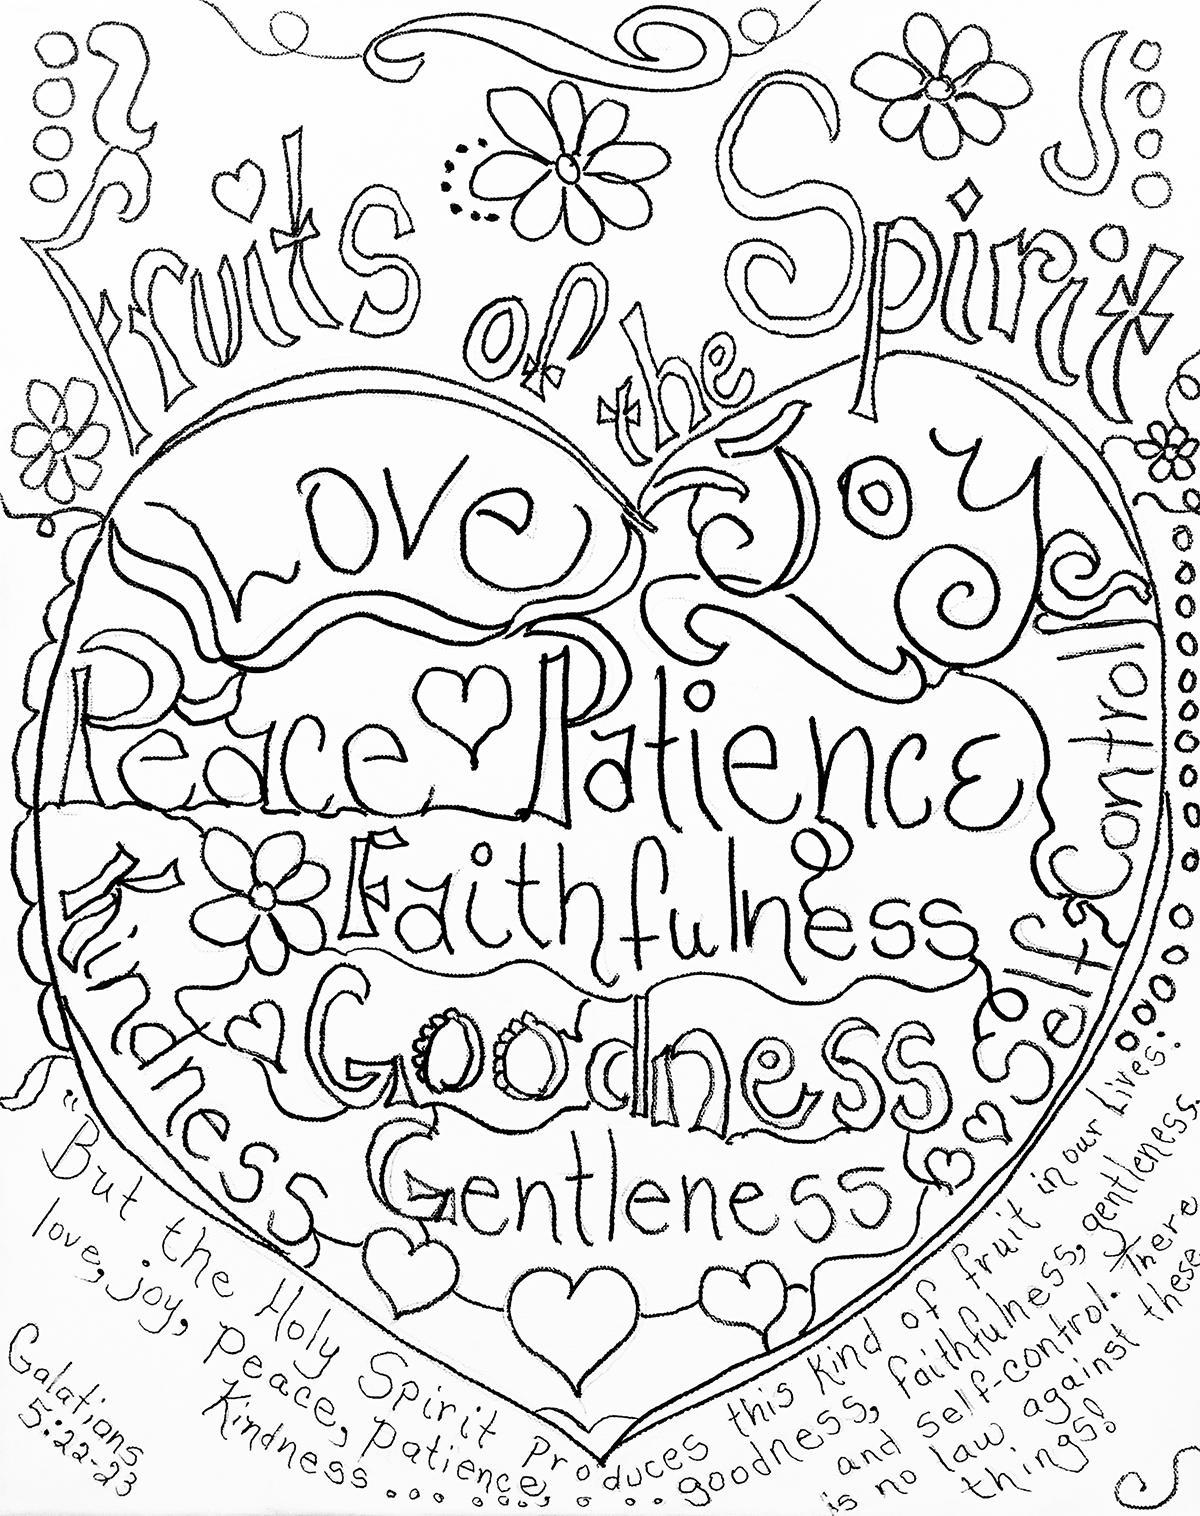 Fruits Of The Spirit Coloring Page By Carolyn Altman Galatians 5 22